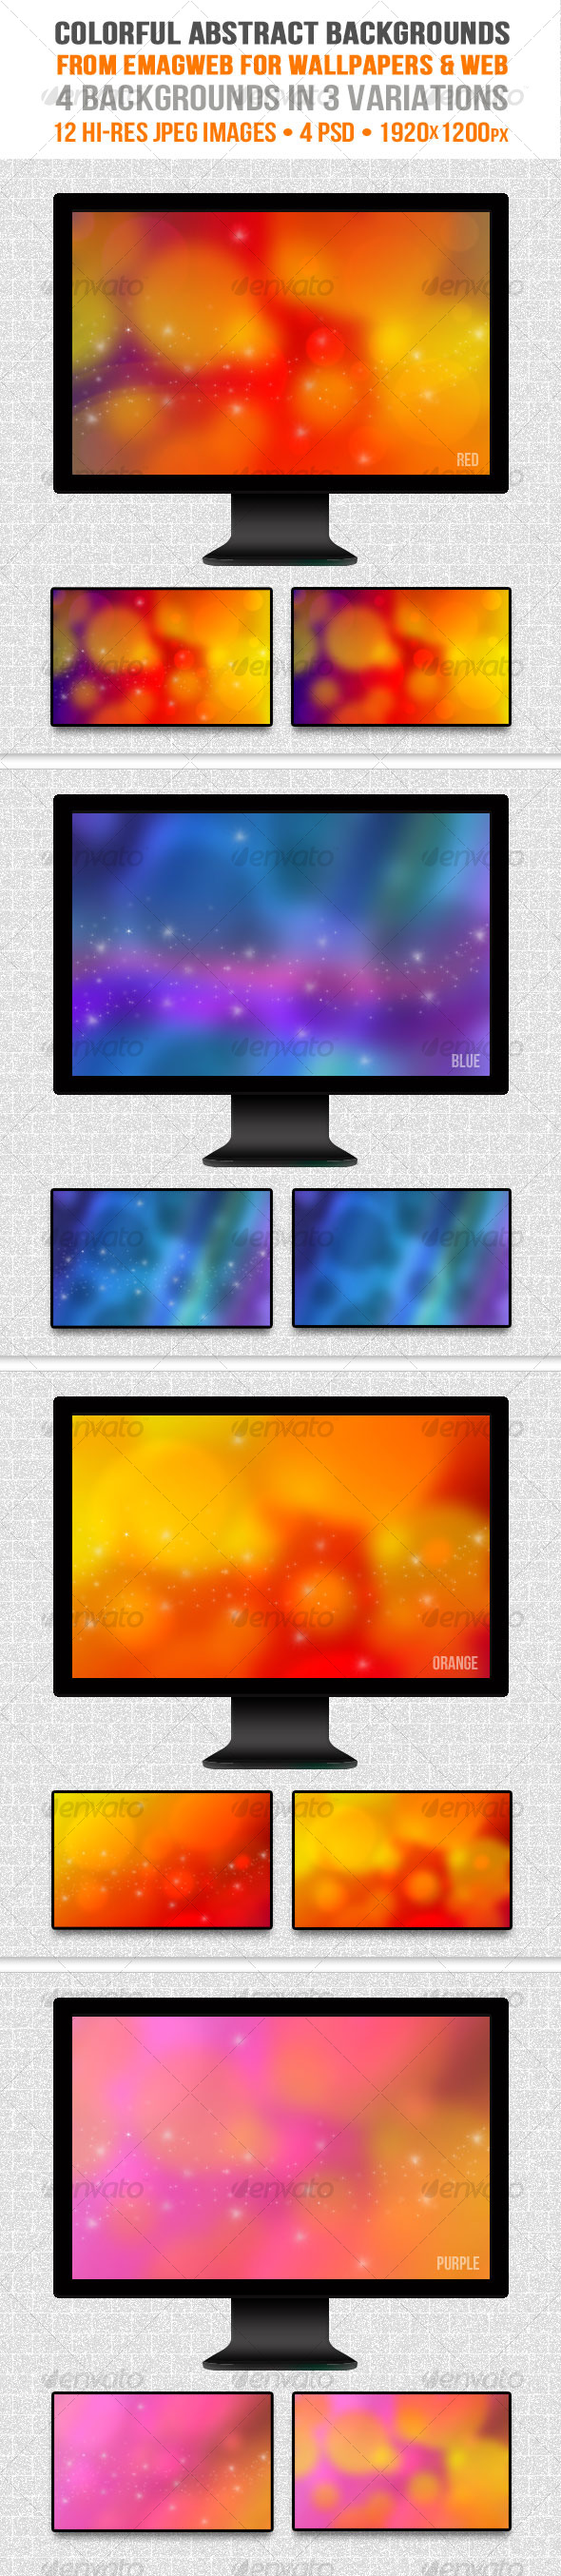 Colorful Abstract Backgrounds for Wallpapers & Web - Abstract Backgrounds